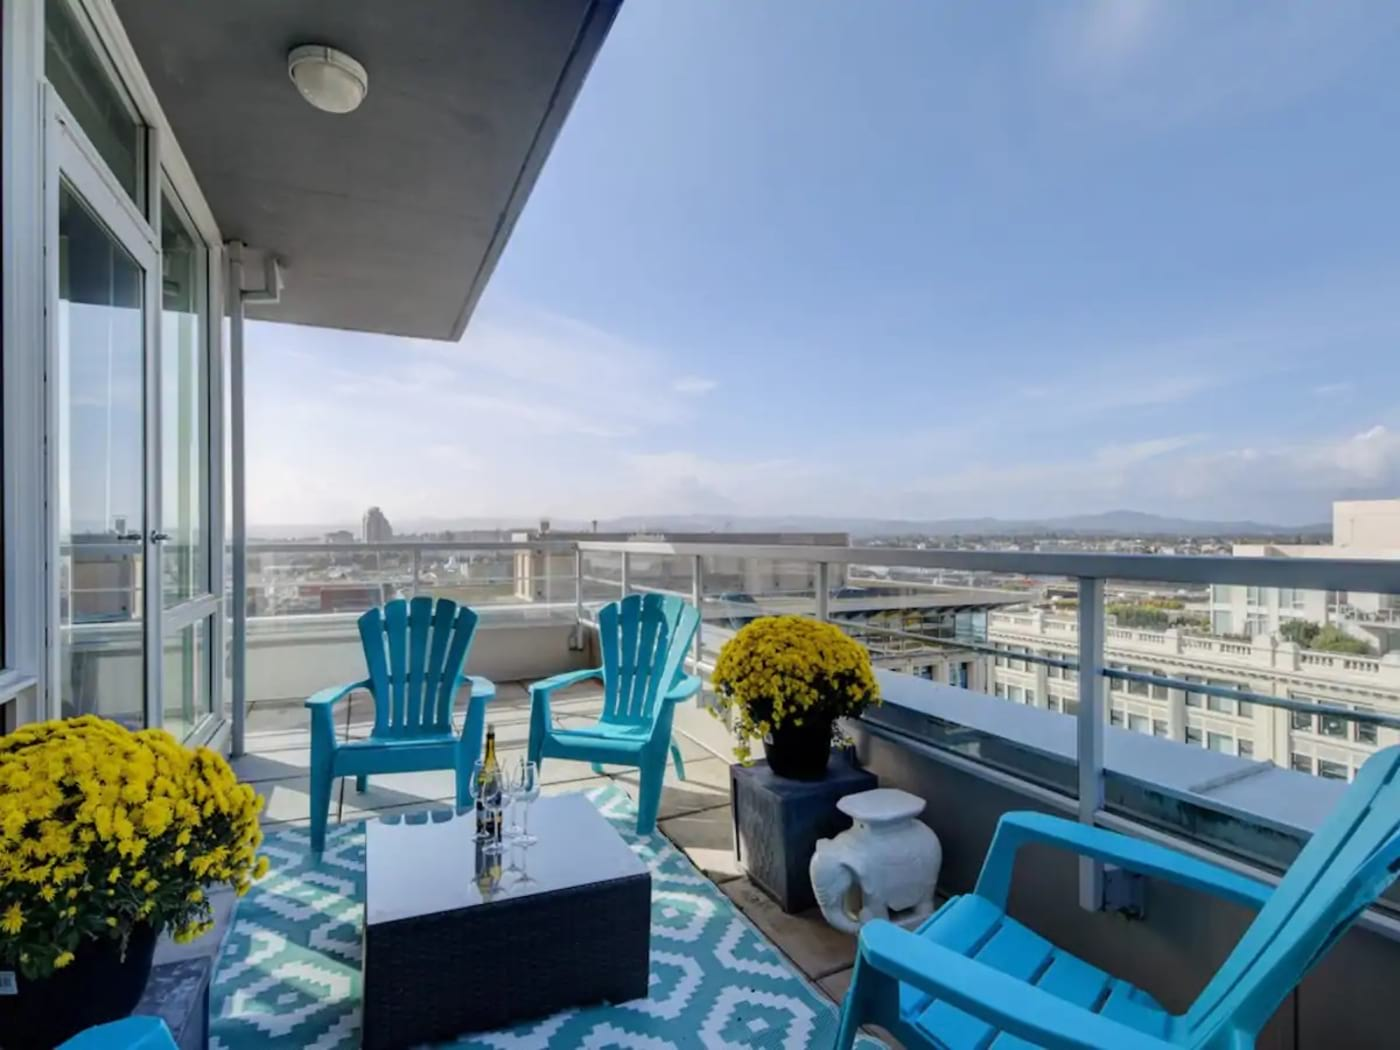 Best Airbnb in Victoria for Families – Secure Downtown Penthouse